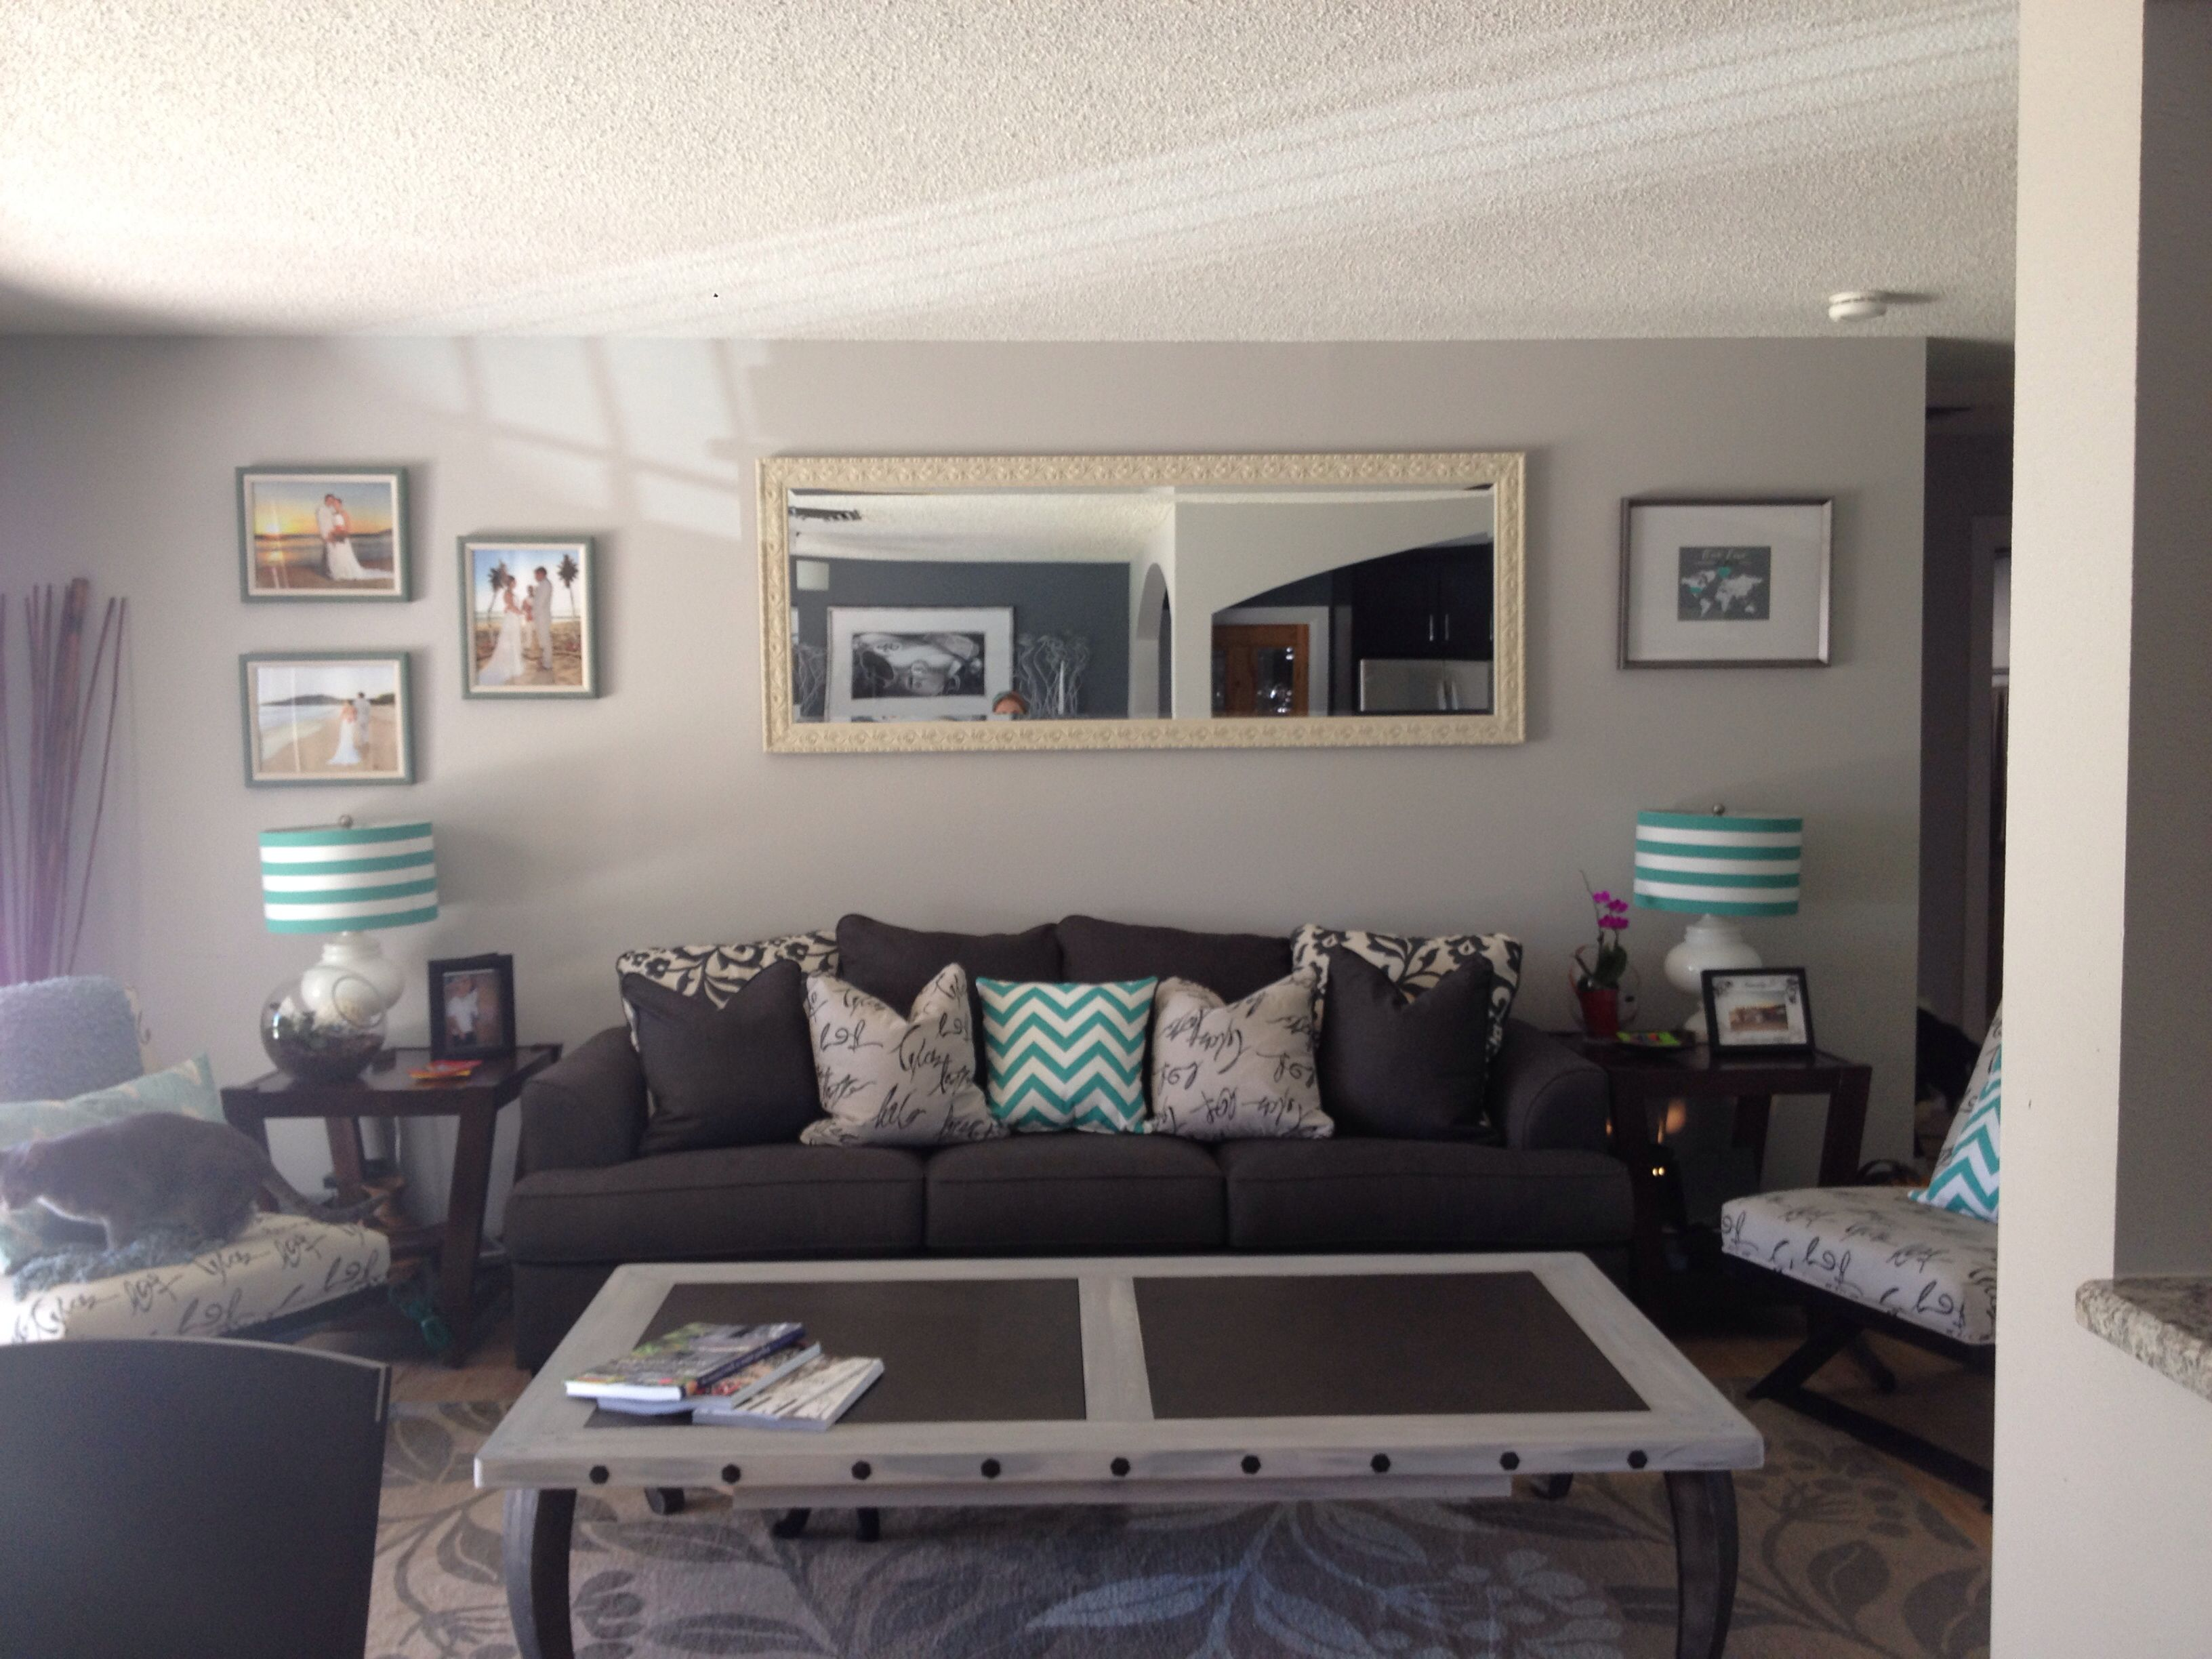 Best Living Room Grey And Turquoise For The Home Pinterest 640 x 480